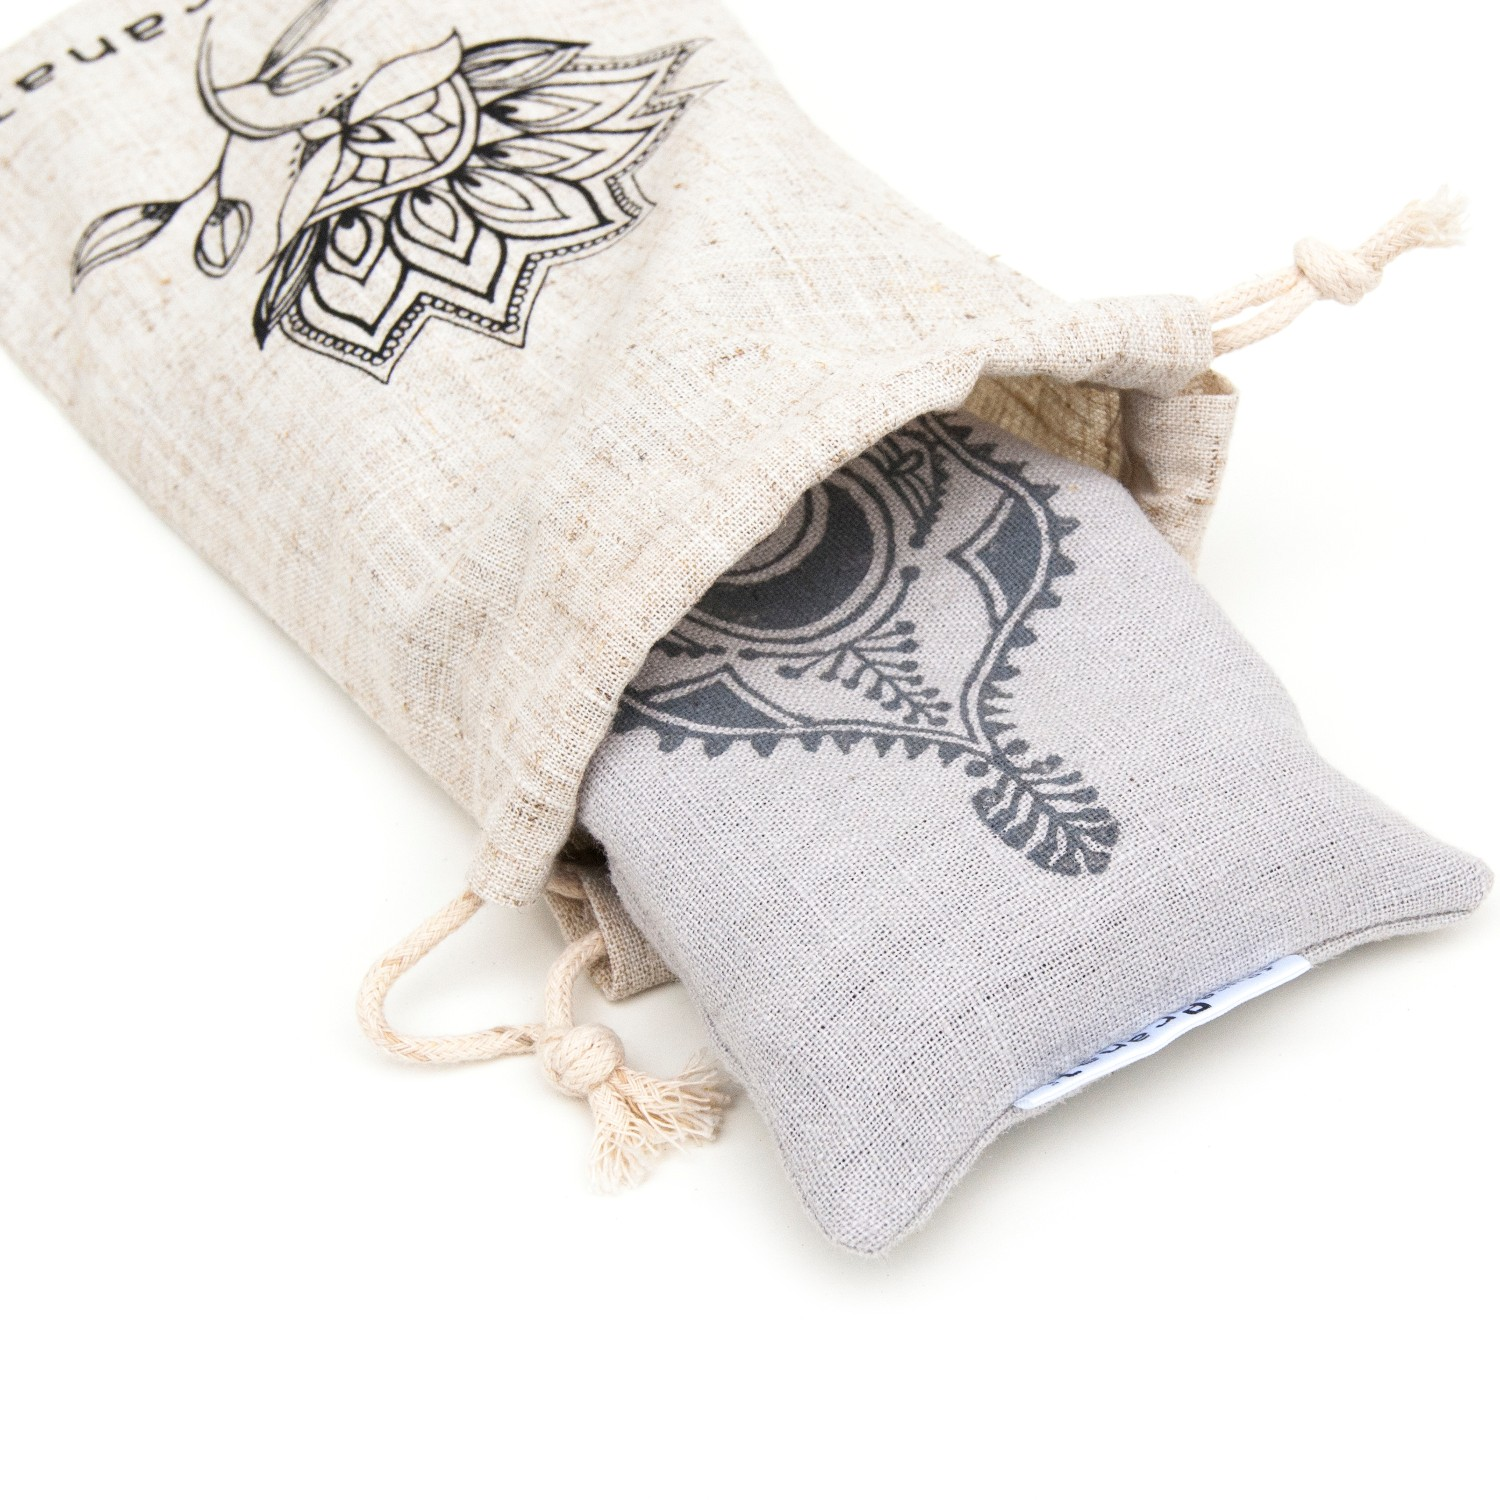 Your lavender eye pillow comes with a linen pouch to take to yoga class.